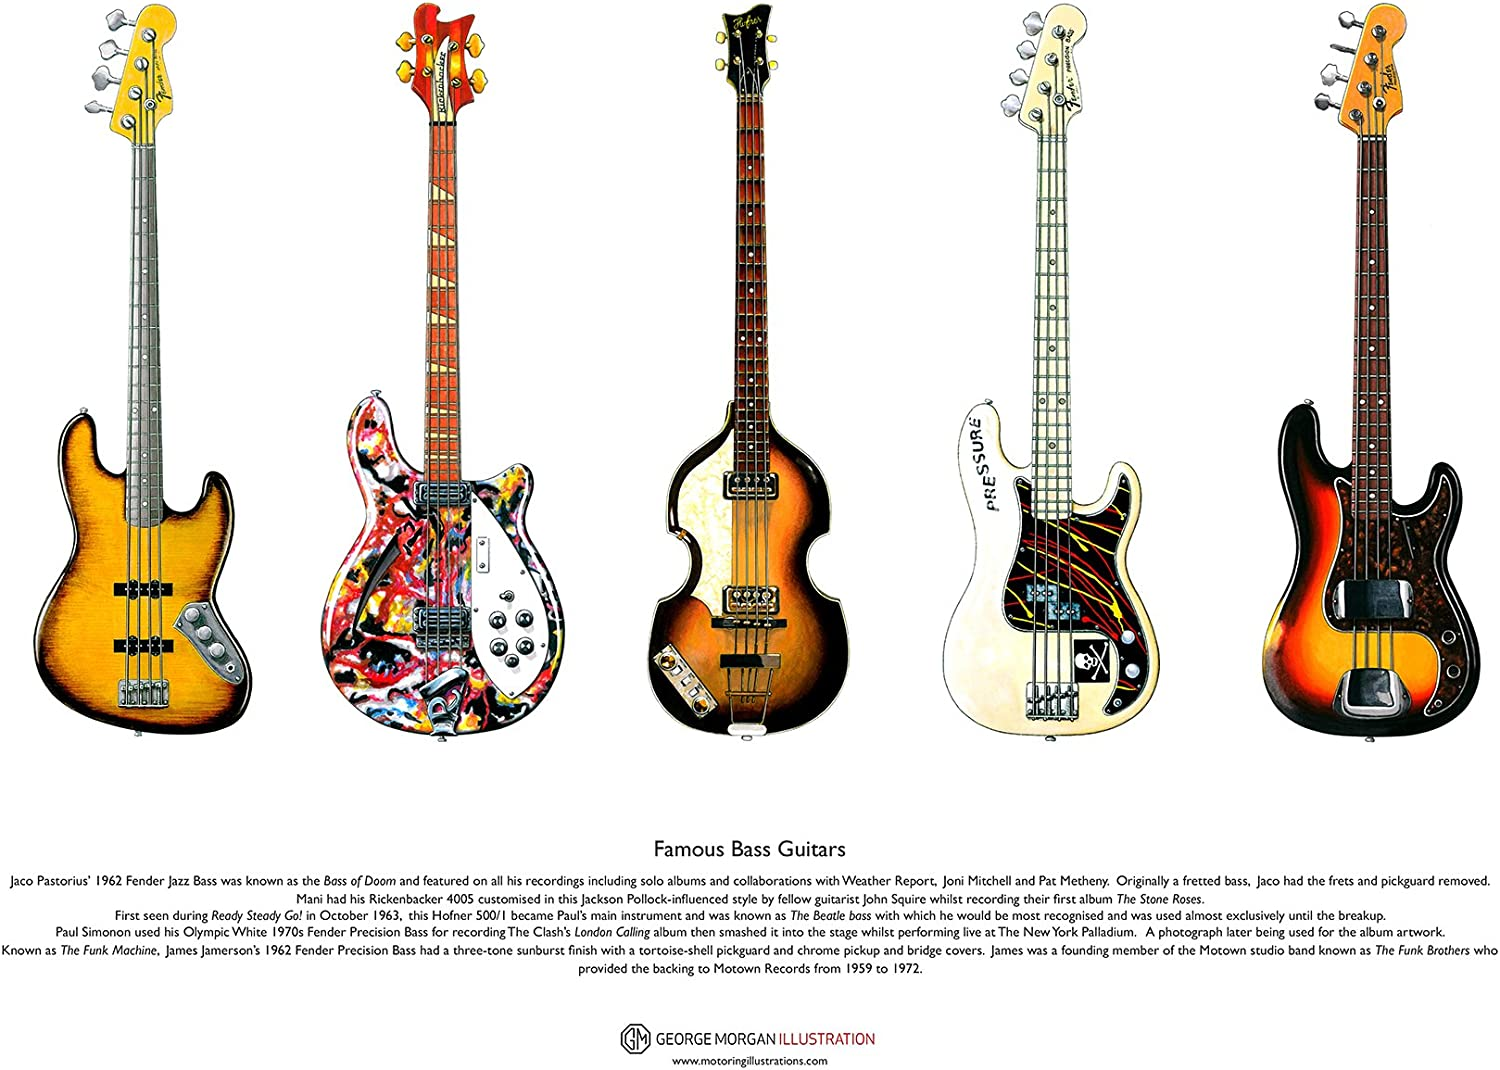 George Morgan Illustration Famosa Guitarras Bajas del Cartel del ...